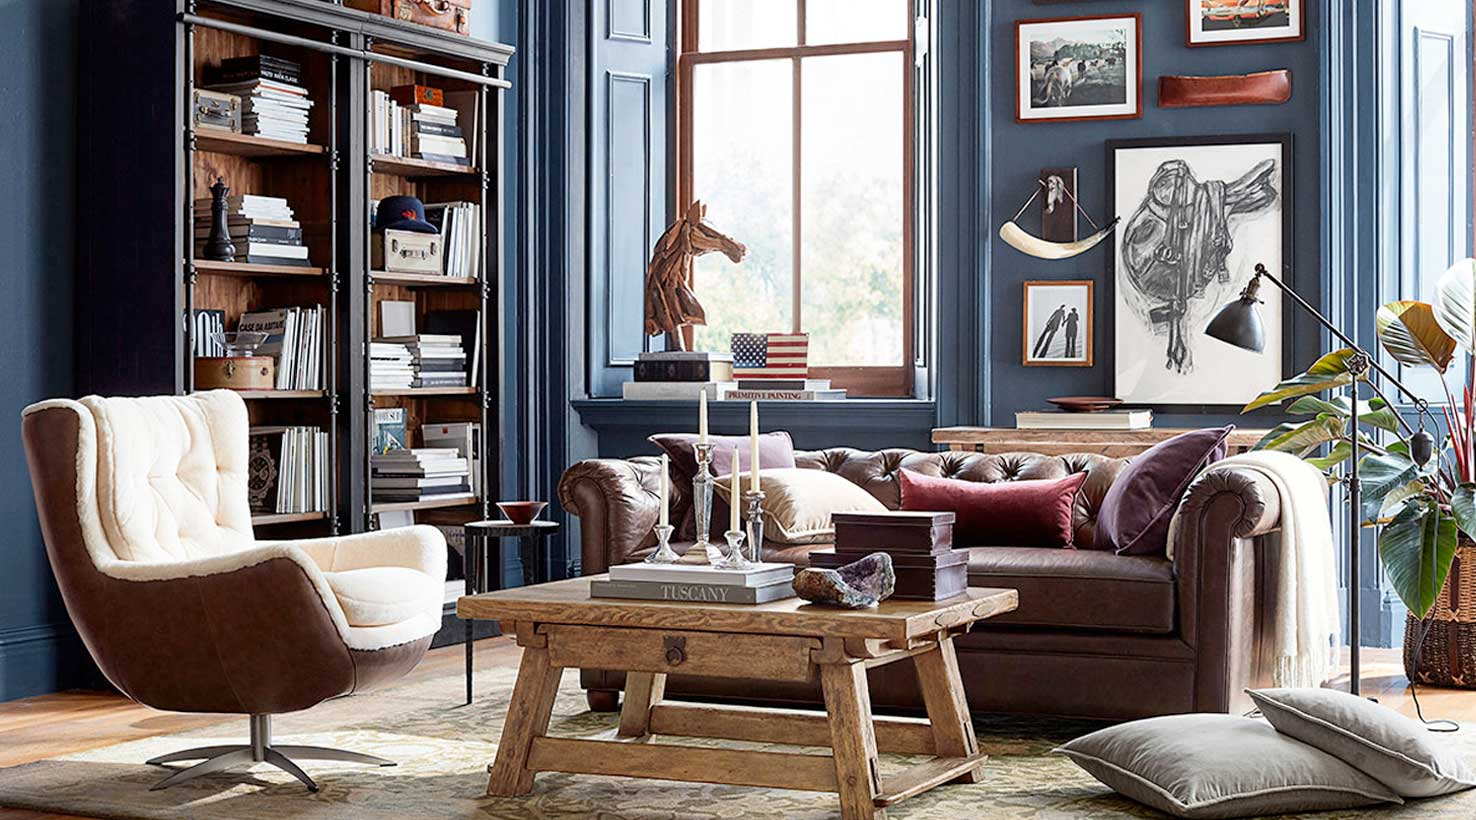 living room paint color ideas inspiration gallery sherwin williams rh sherwin williams com living room colour design living room color design ideas